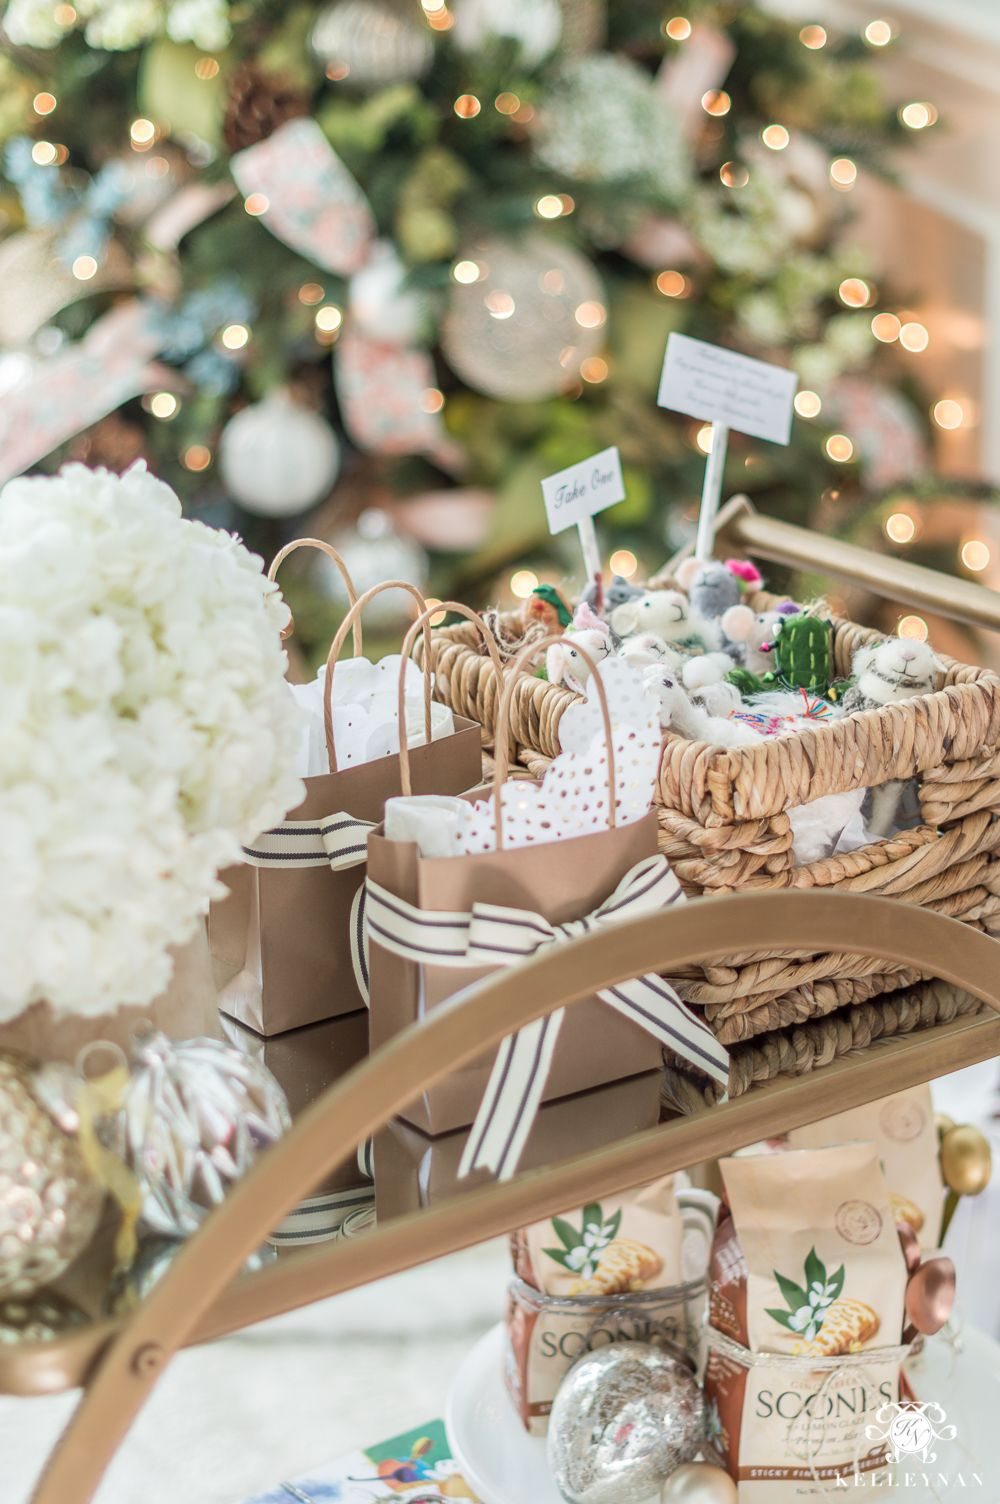 Holiday Hostess And Neighbor Gift Ideas And Everything In Between Kelley Nan Christmas Hostess Gifts Holiday Hostess Party Hostess Gifts